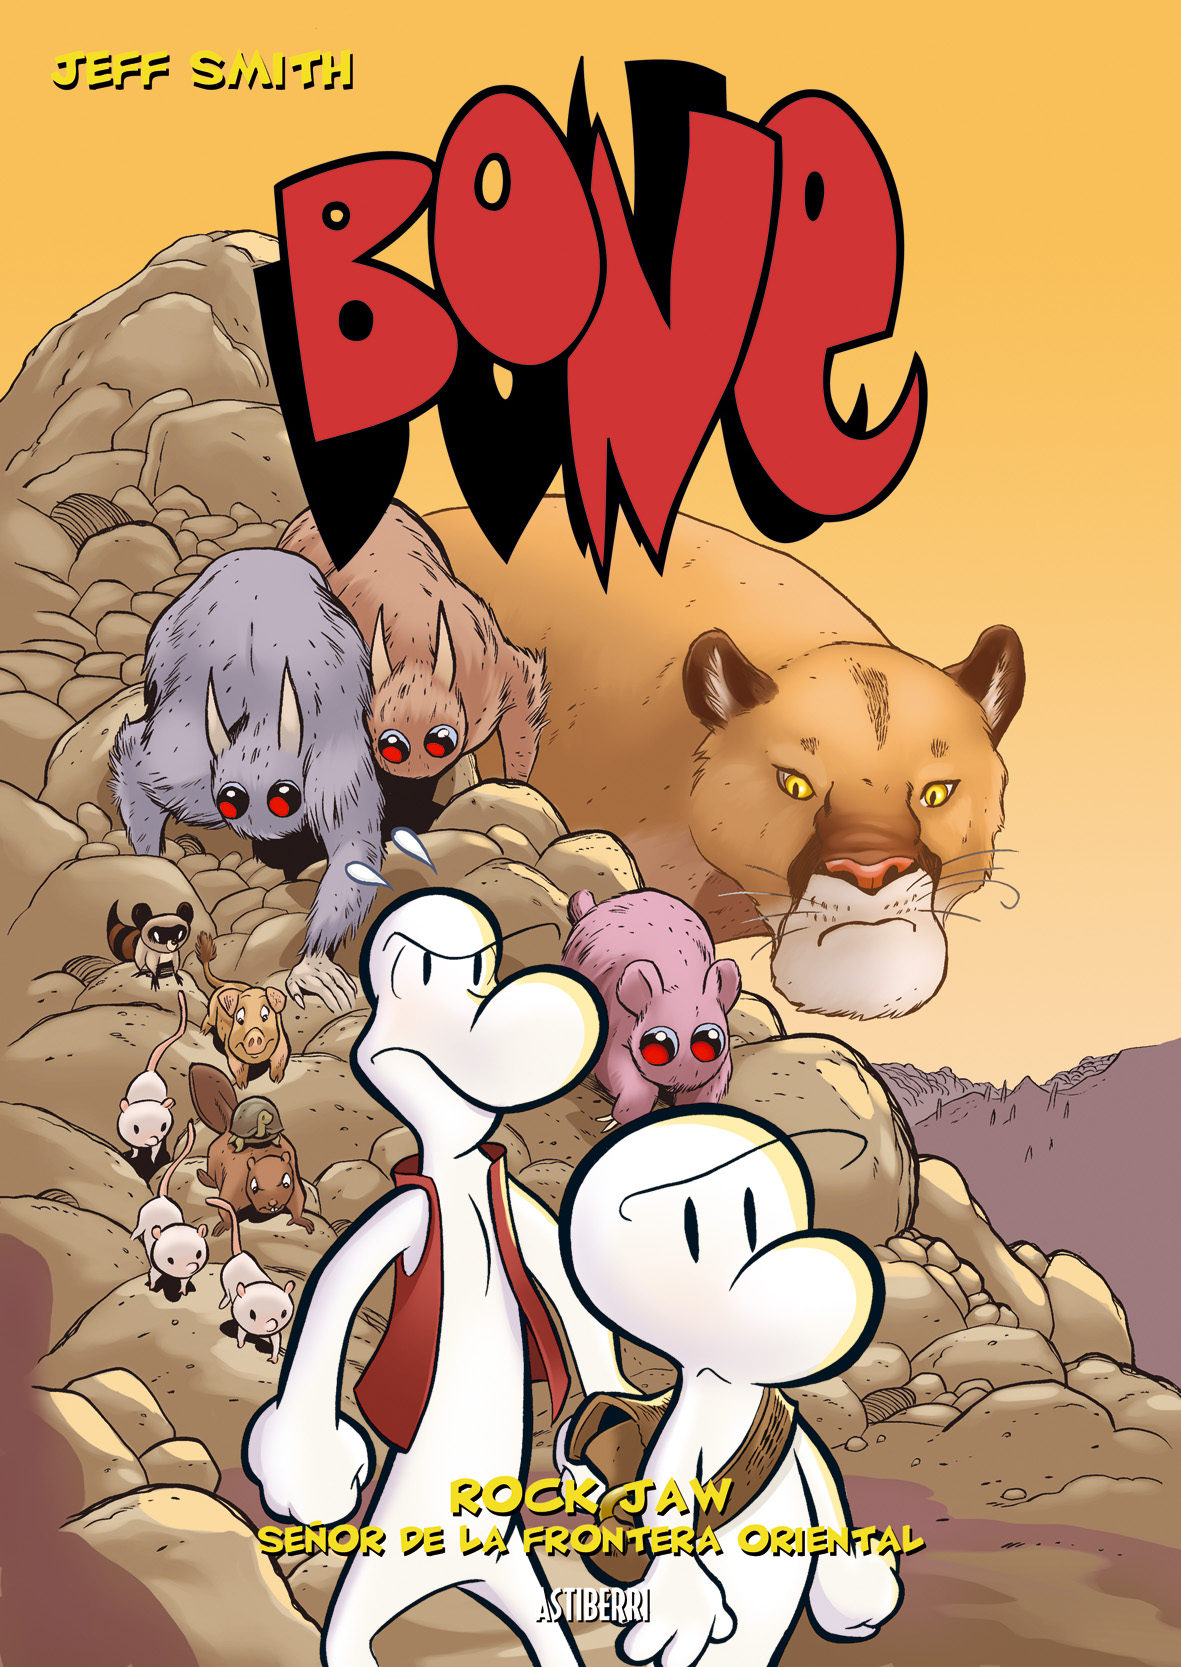 bone nº 5: rock jaw: señor de la frontera oriental-jeff smith-9788496815377